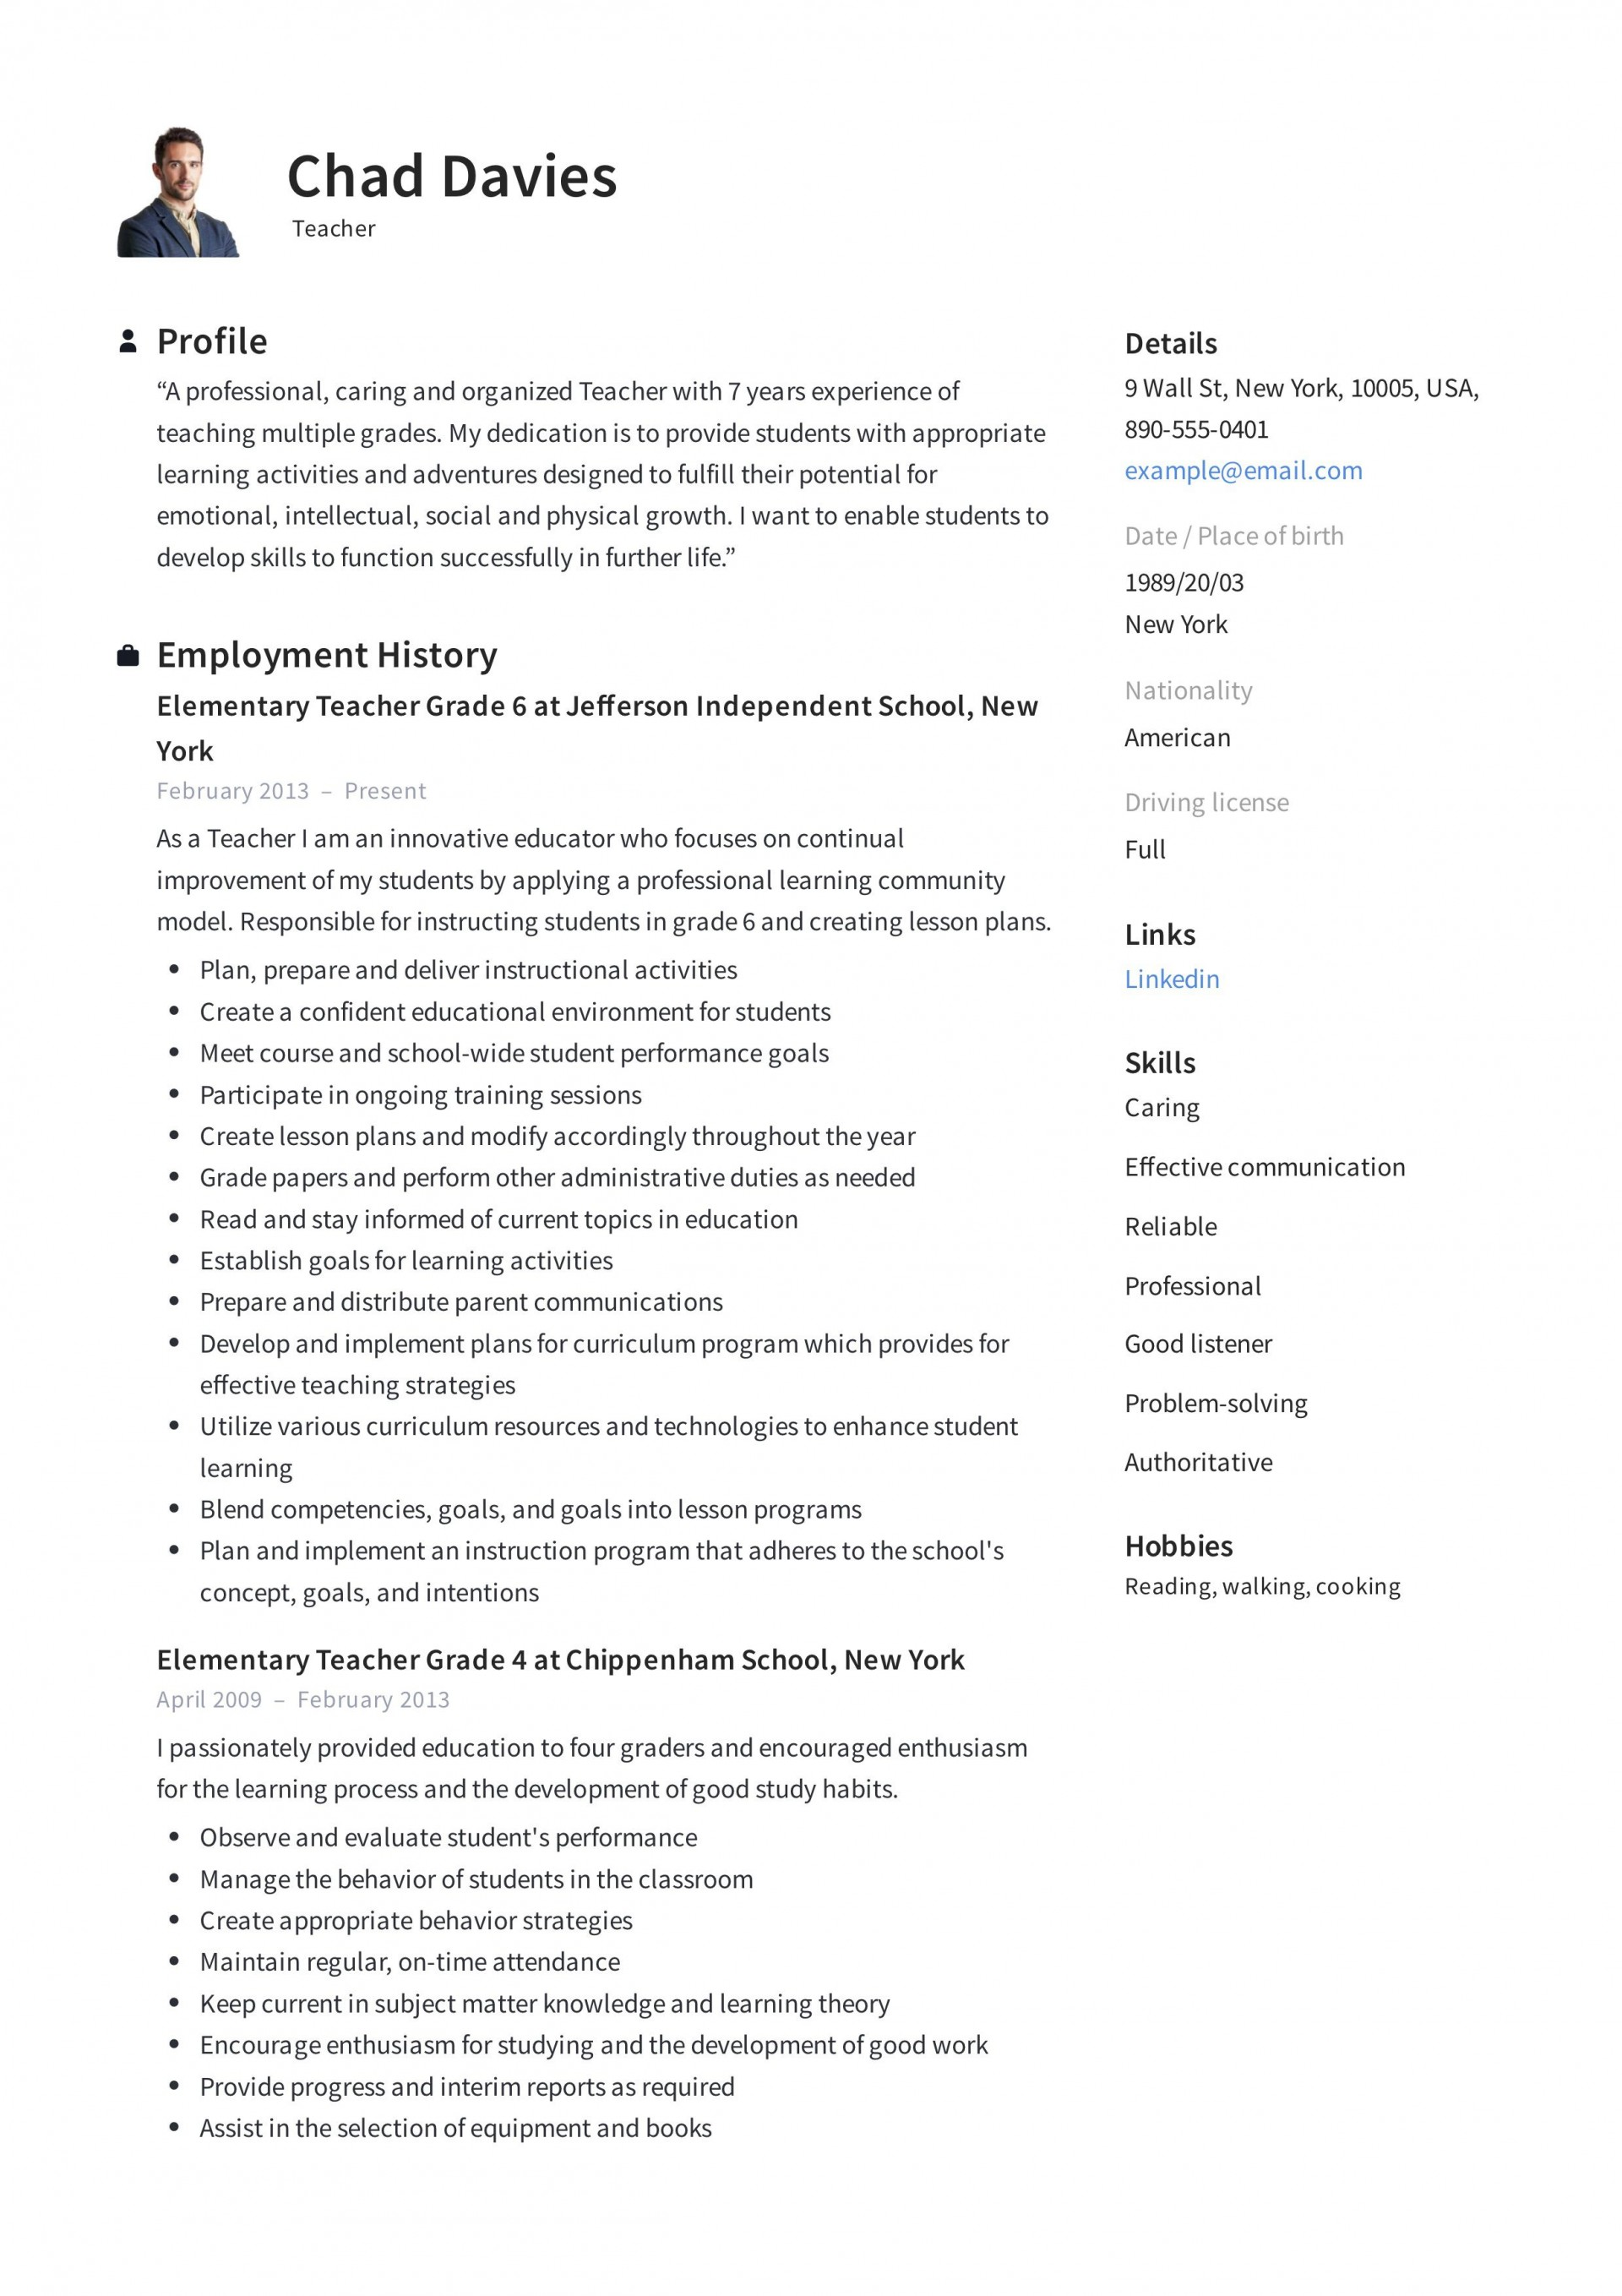 001 Magnificent Resume Template For Teaching High Resolution  Cv Job Application Assistant In Pakistan1920